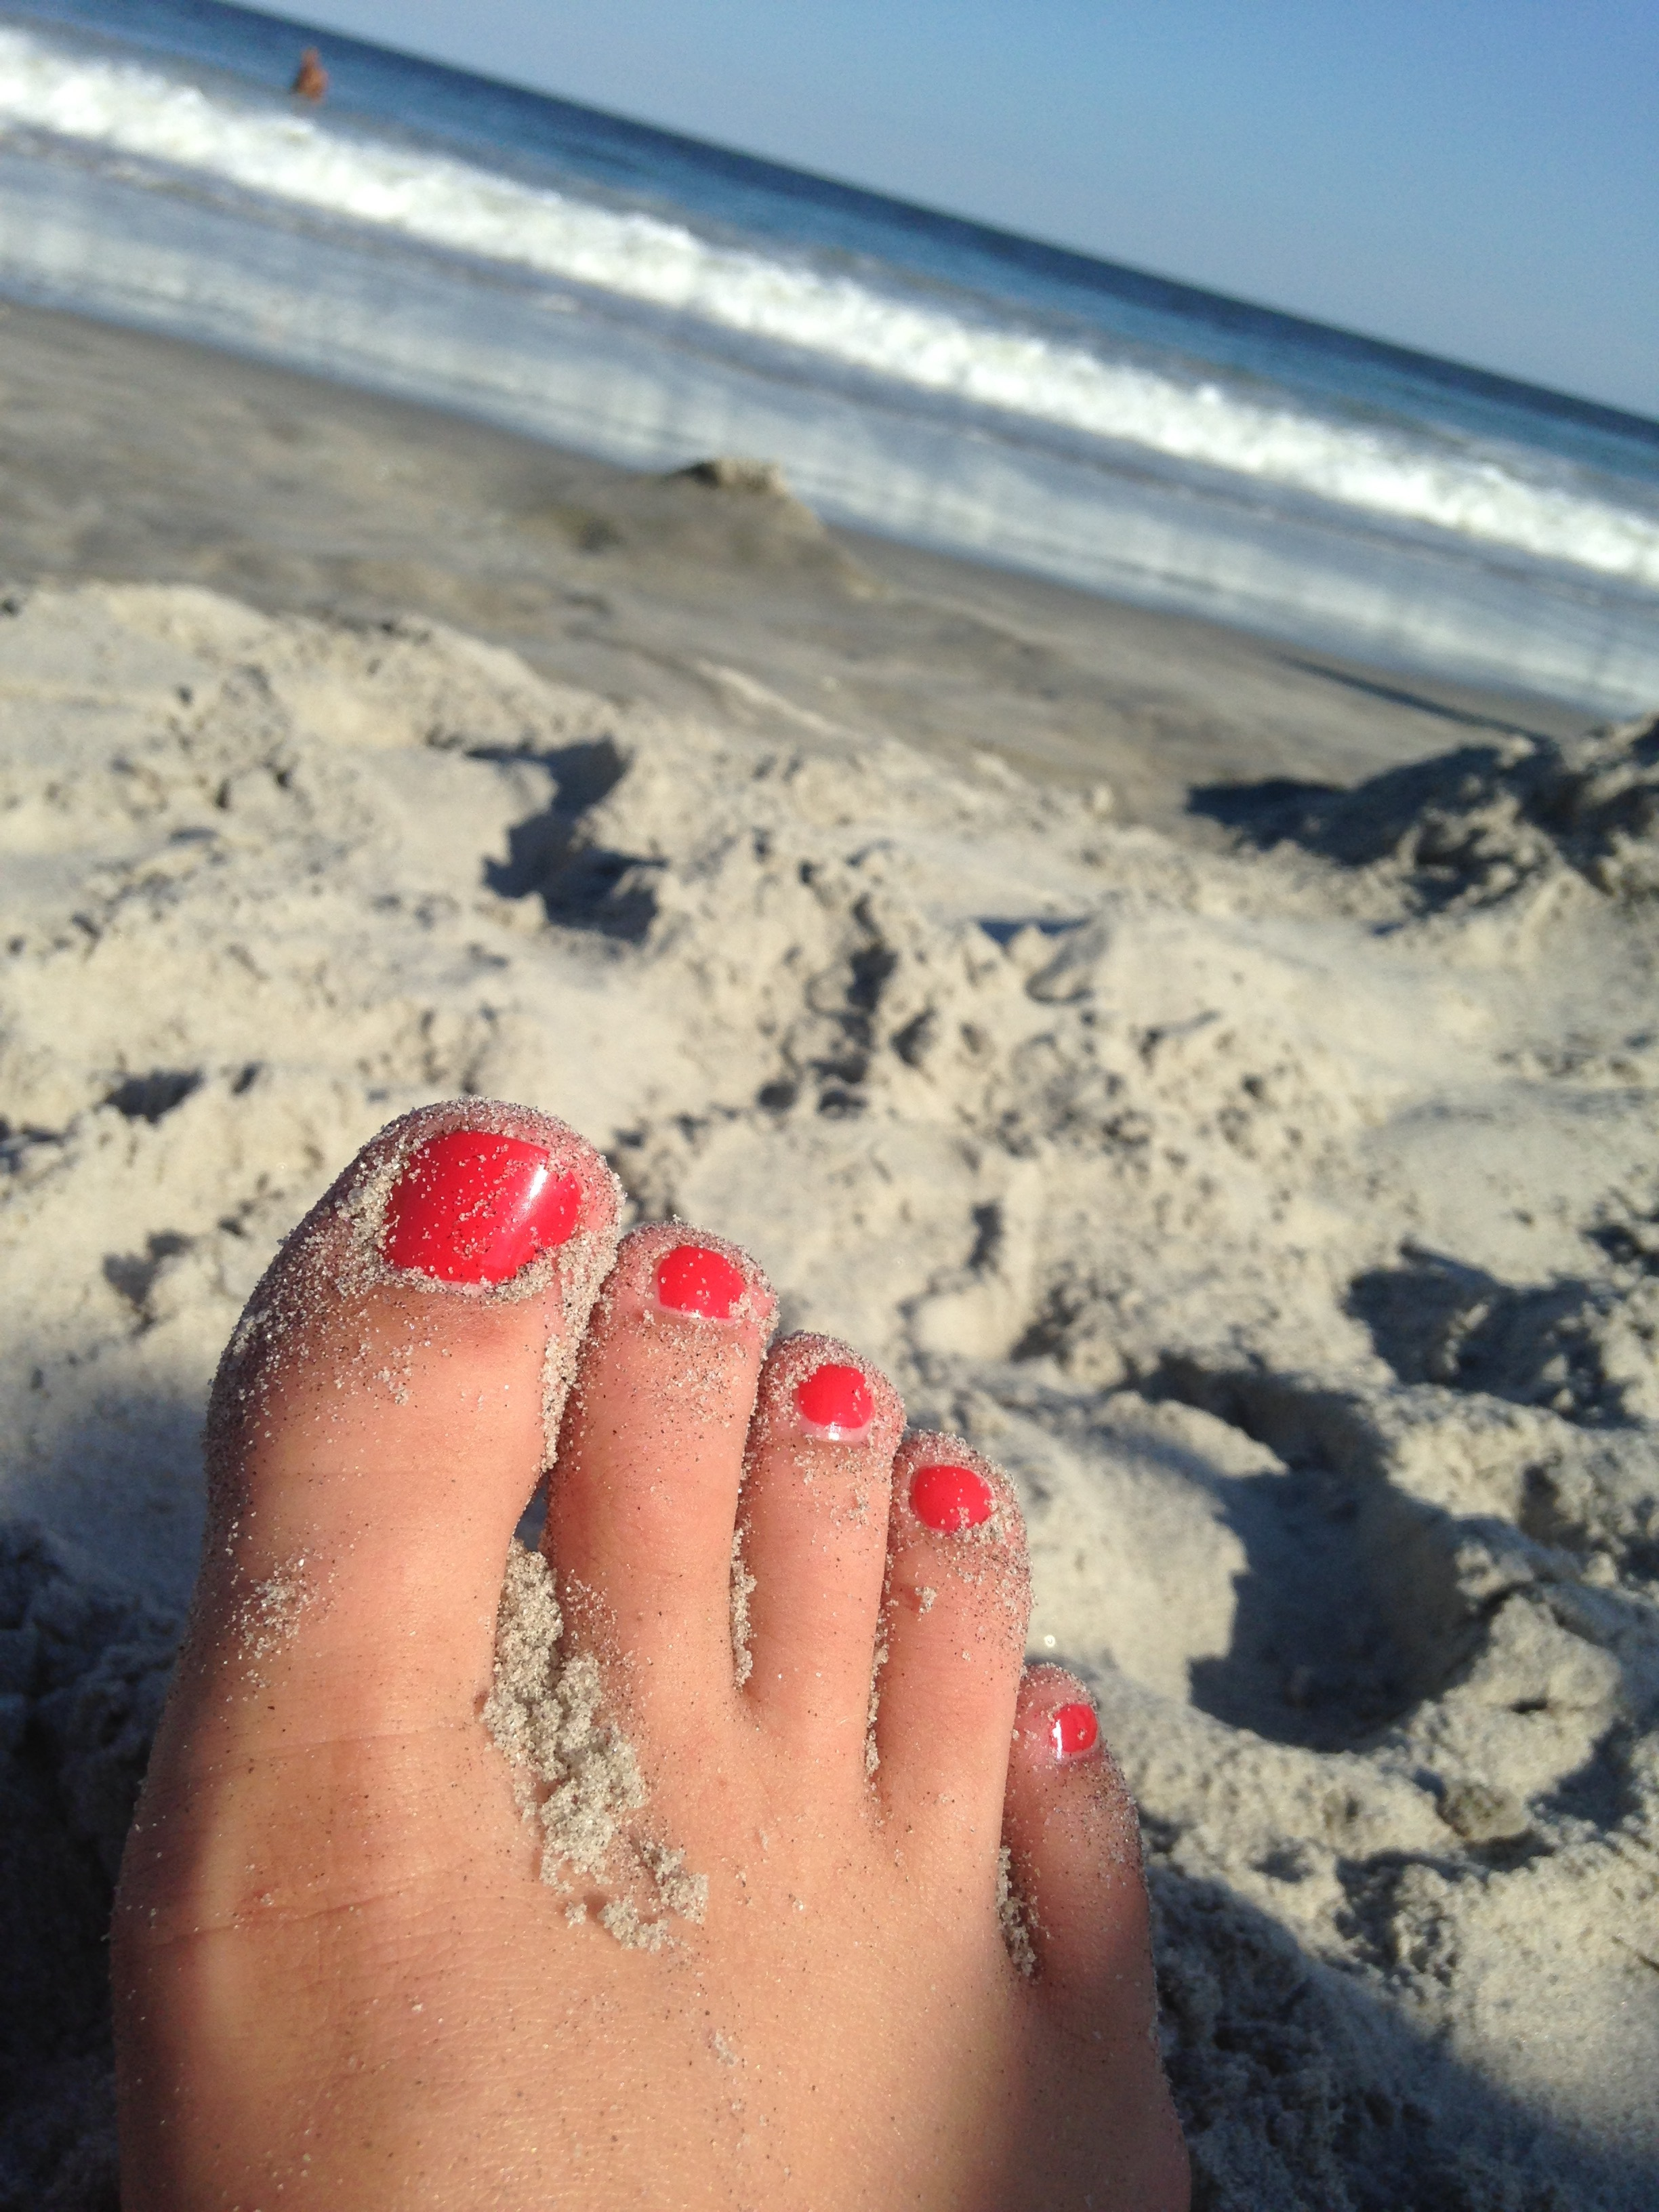 Cajun Shrimp by OPI - my favorite pedicure color!